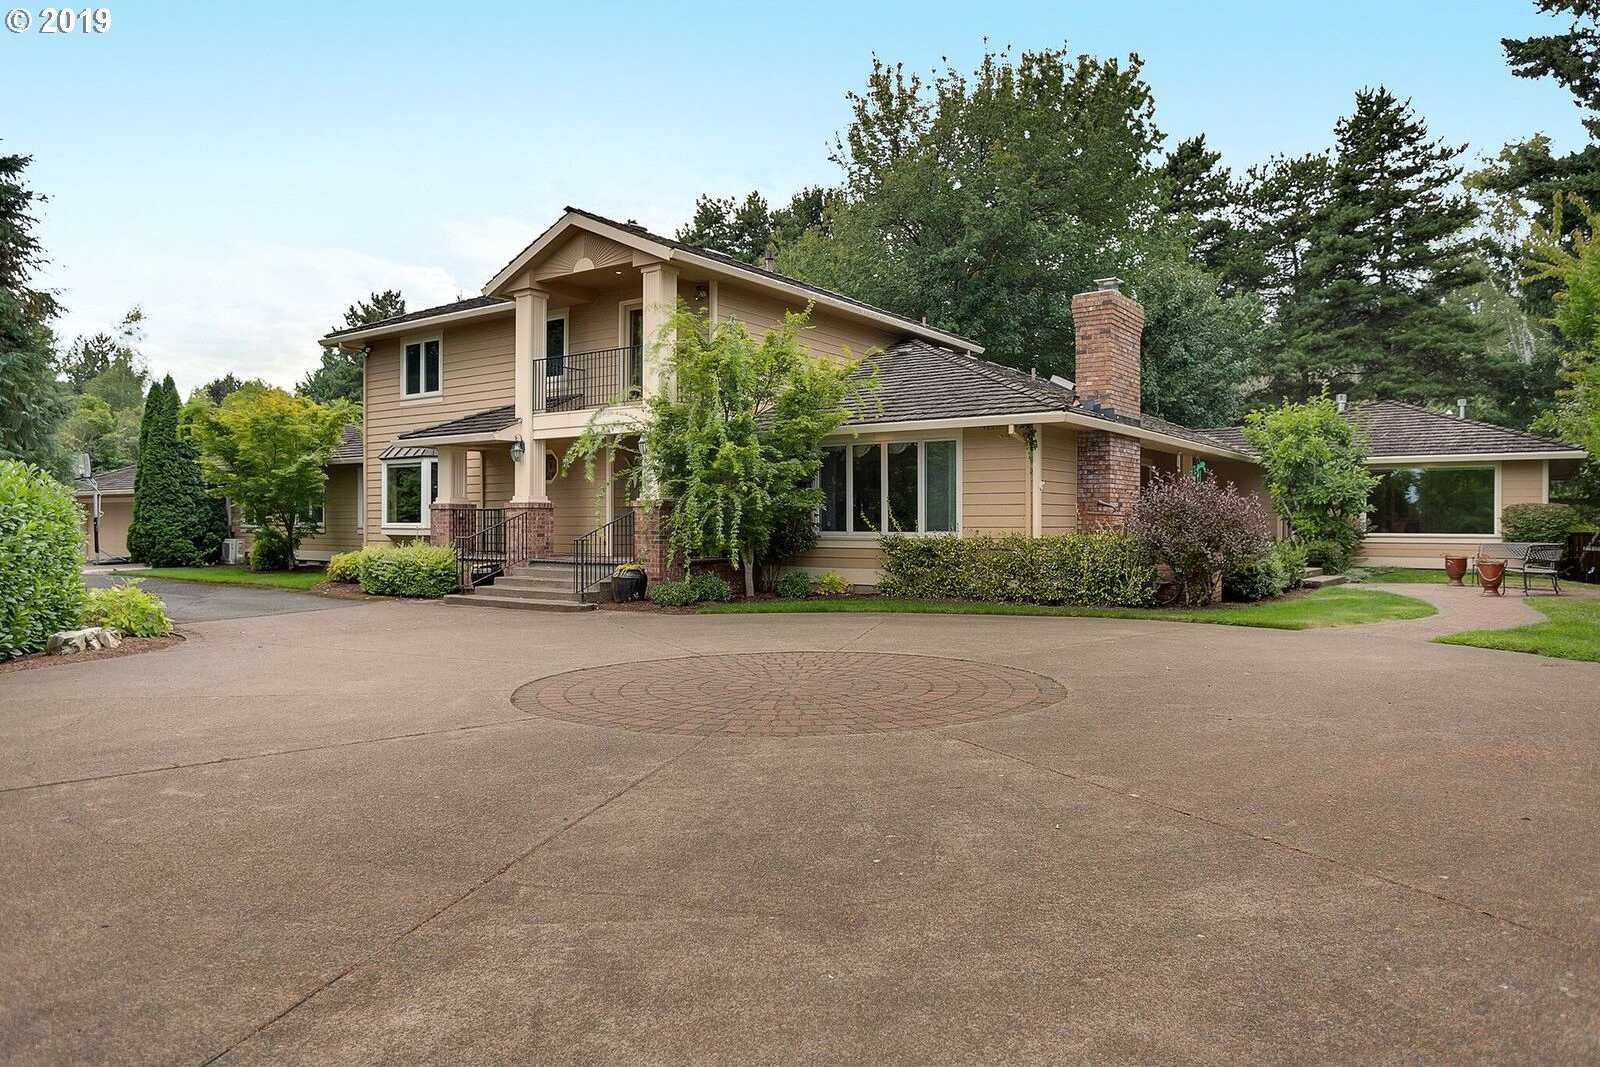 $975,000 - 6Br/6Ba -  for Sale in Tigard